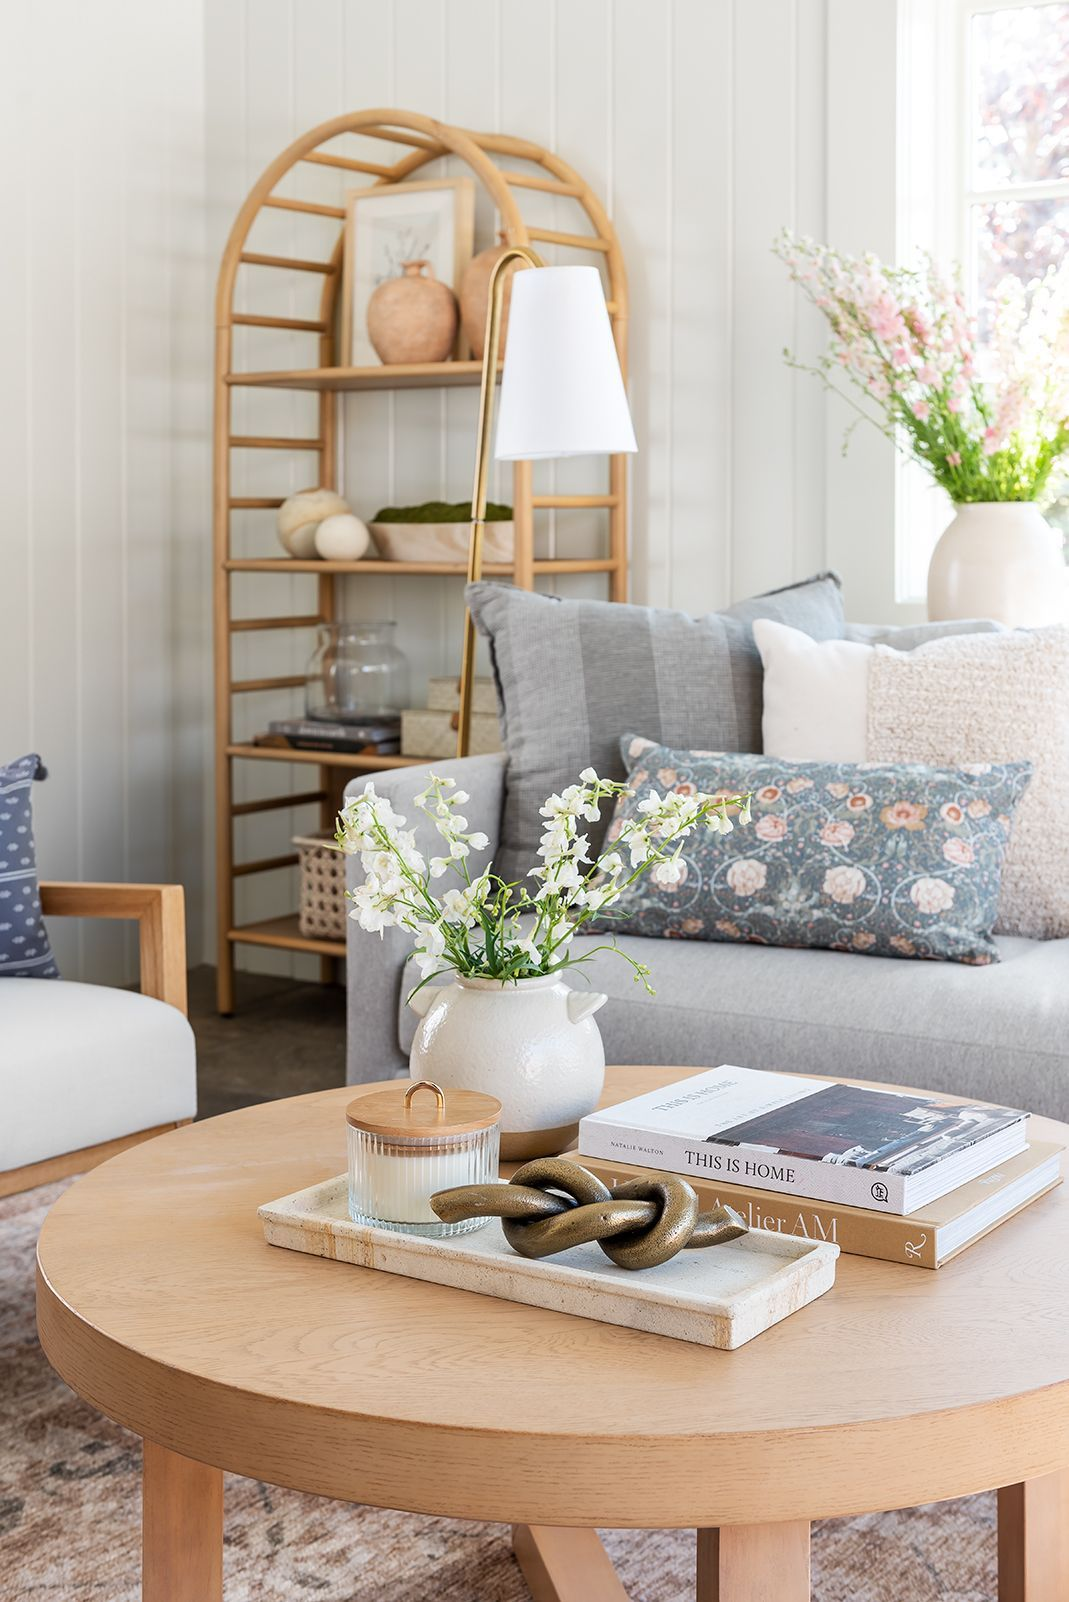 Redecorate For Spring With Threshold Designed With Studio Mcgee At Target Studio Mcgee In 2021 Farm House Living Room Couch Design Home Coffee Tables [ 1602 x 1069 Pixel ]